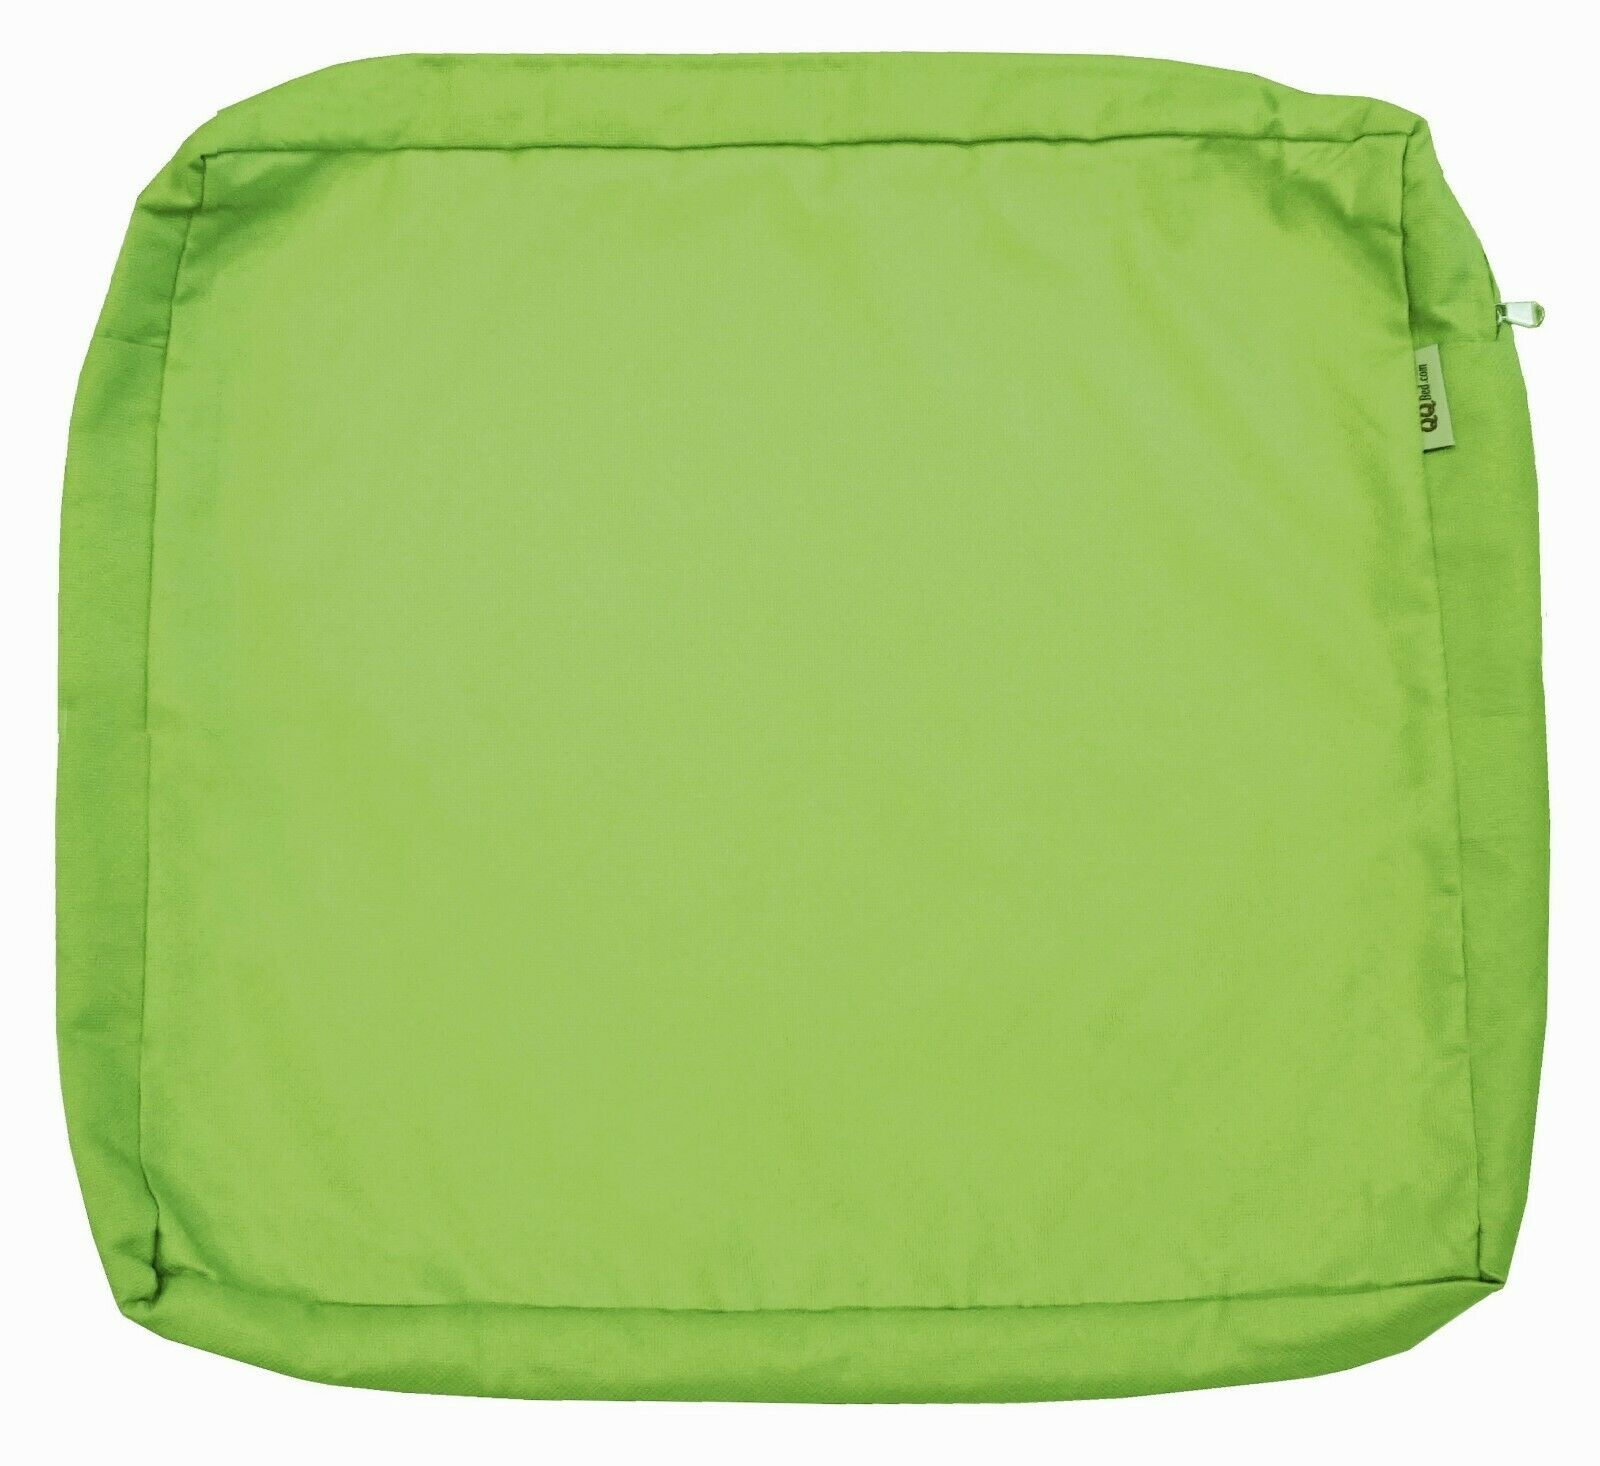 Waterproof Outdoor Seat Chair Patio Cushion Pad Cover Duvet